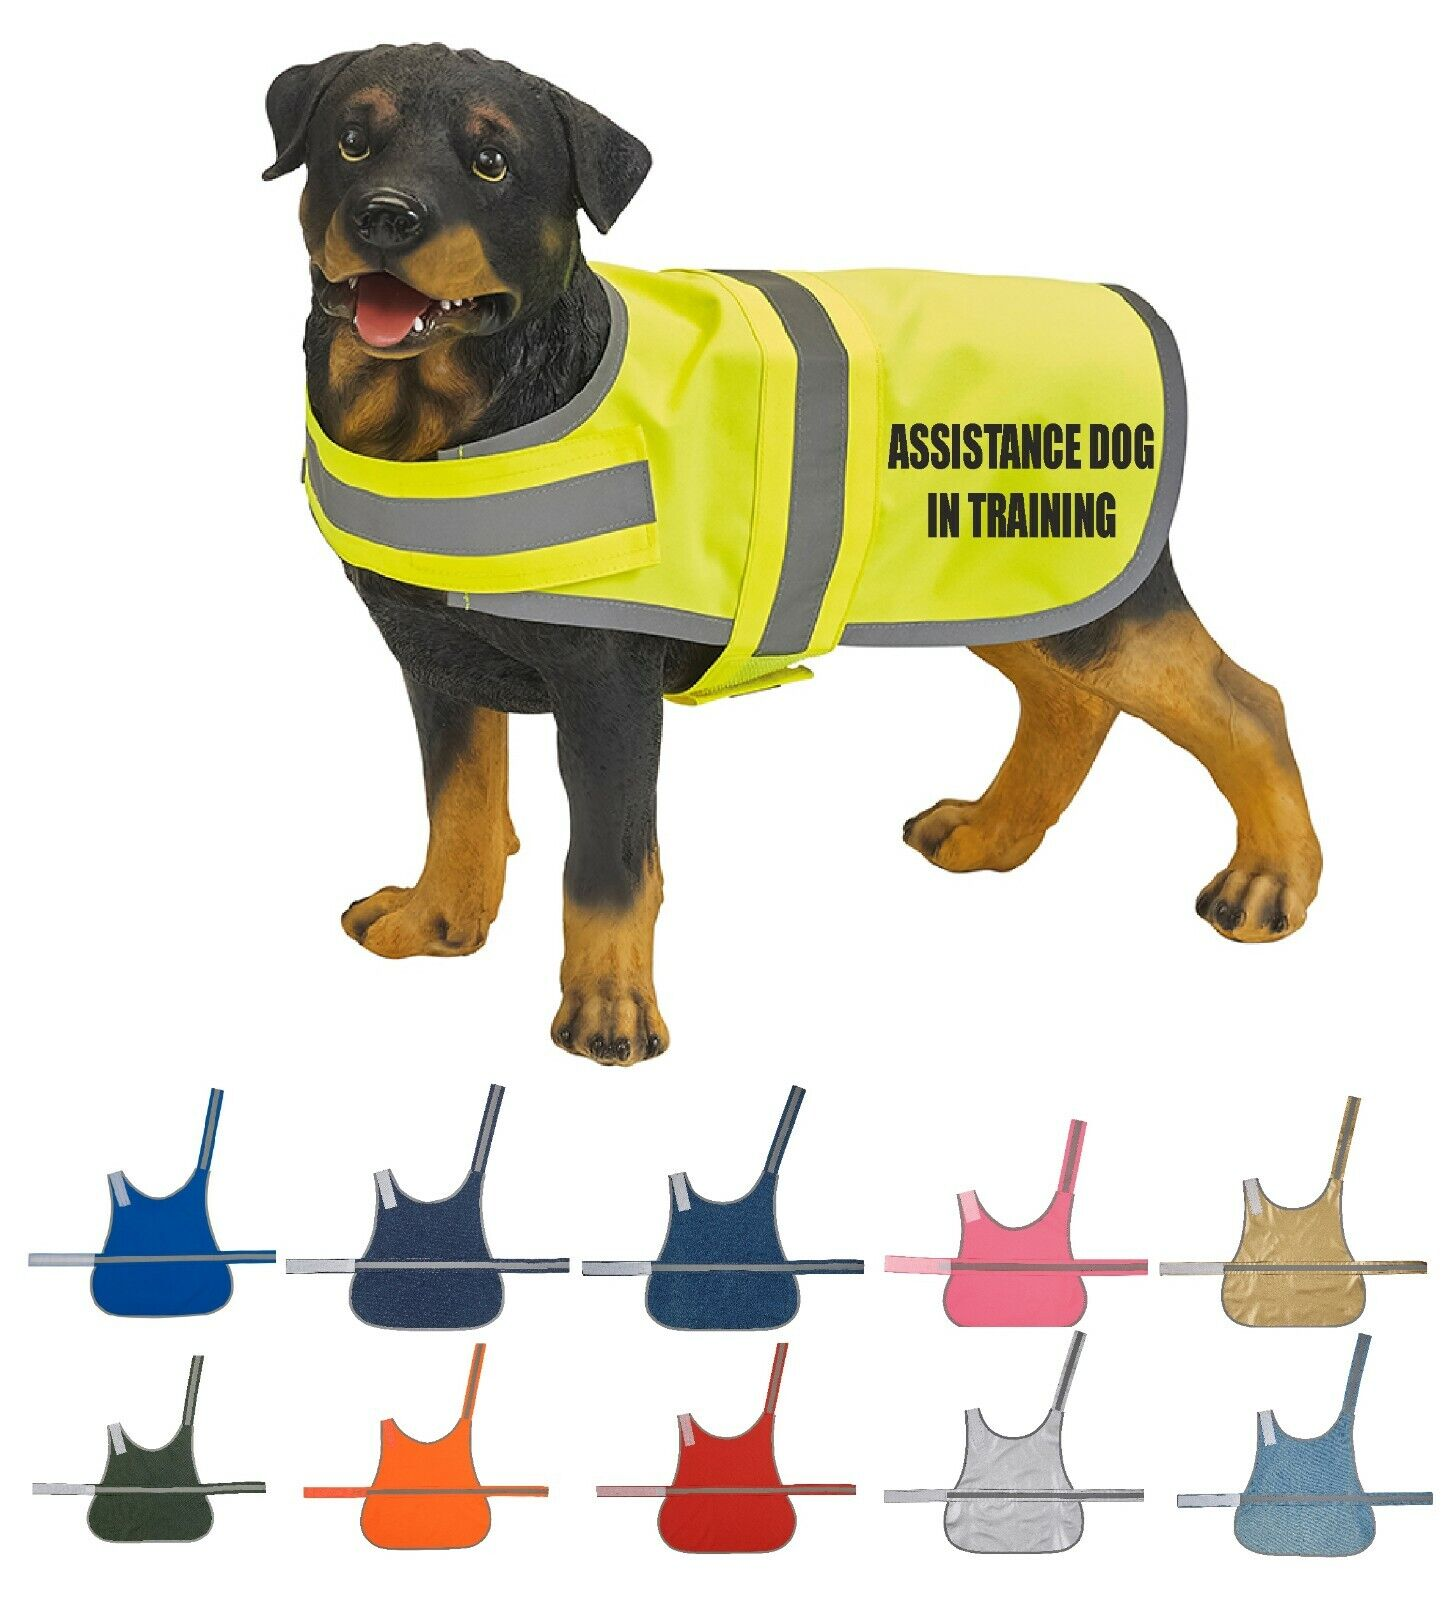 Assistance dog vest uk property investment hotspotsystem